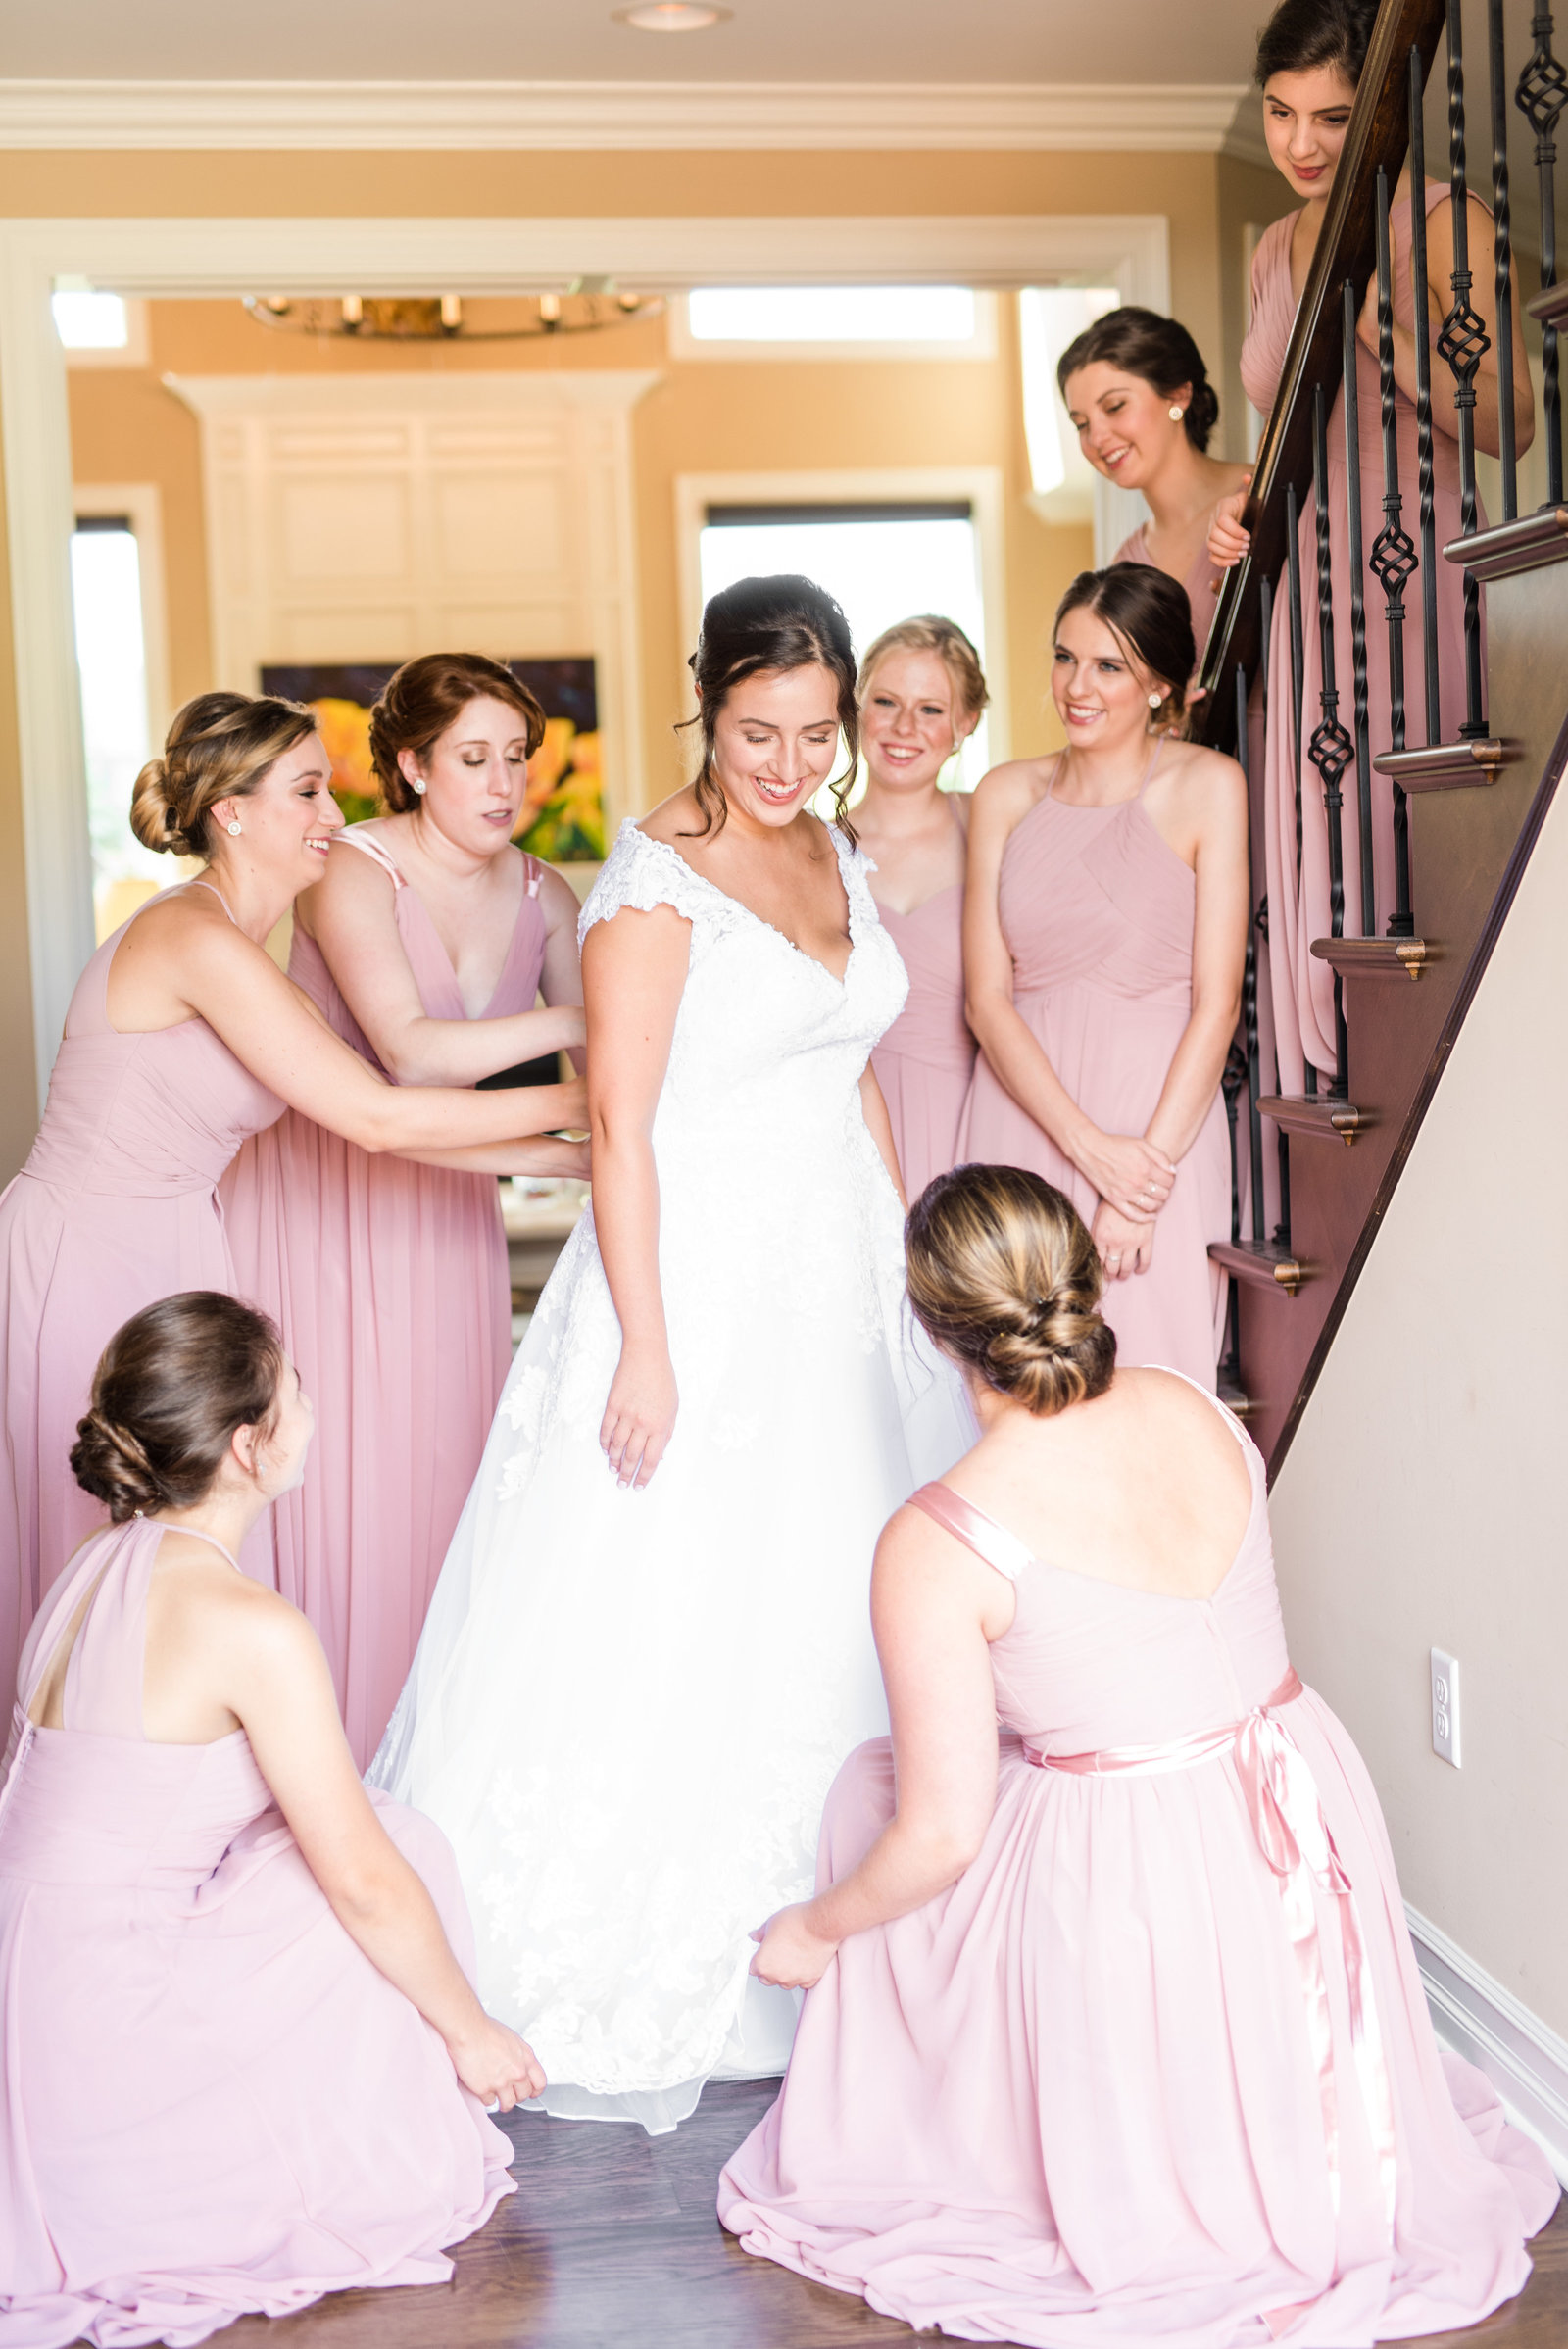 Bridesmaids and Bride Getting Ready Wedding Portraits Blush Pink Bridesmaids Dress